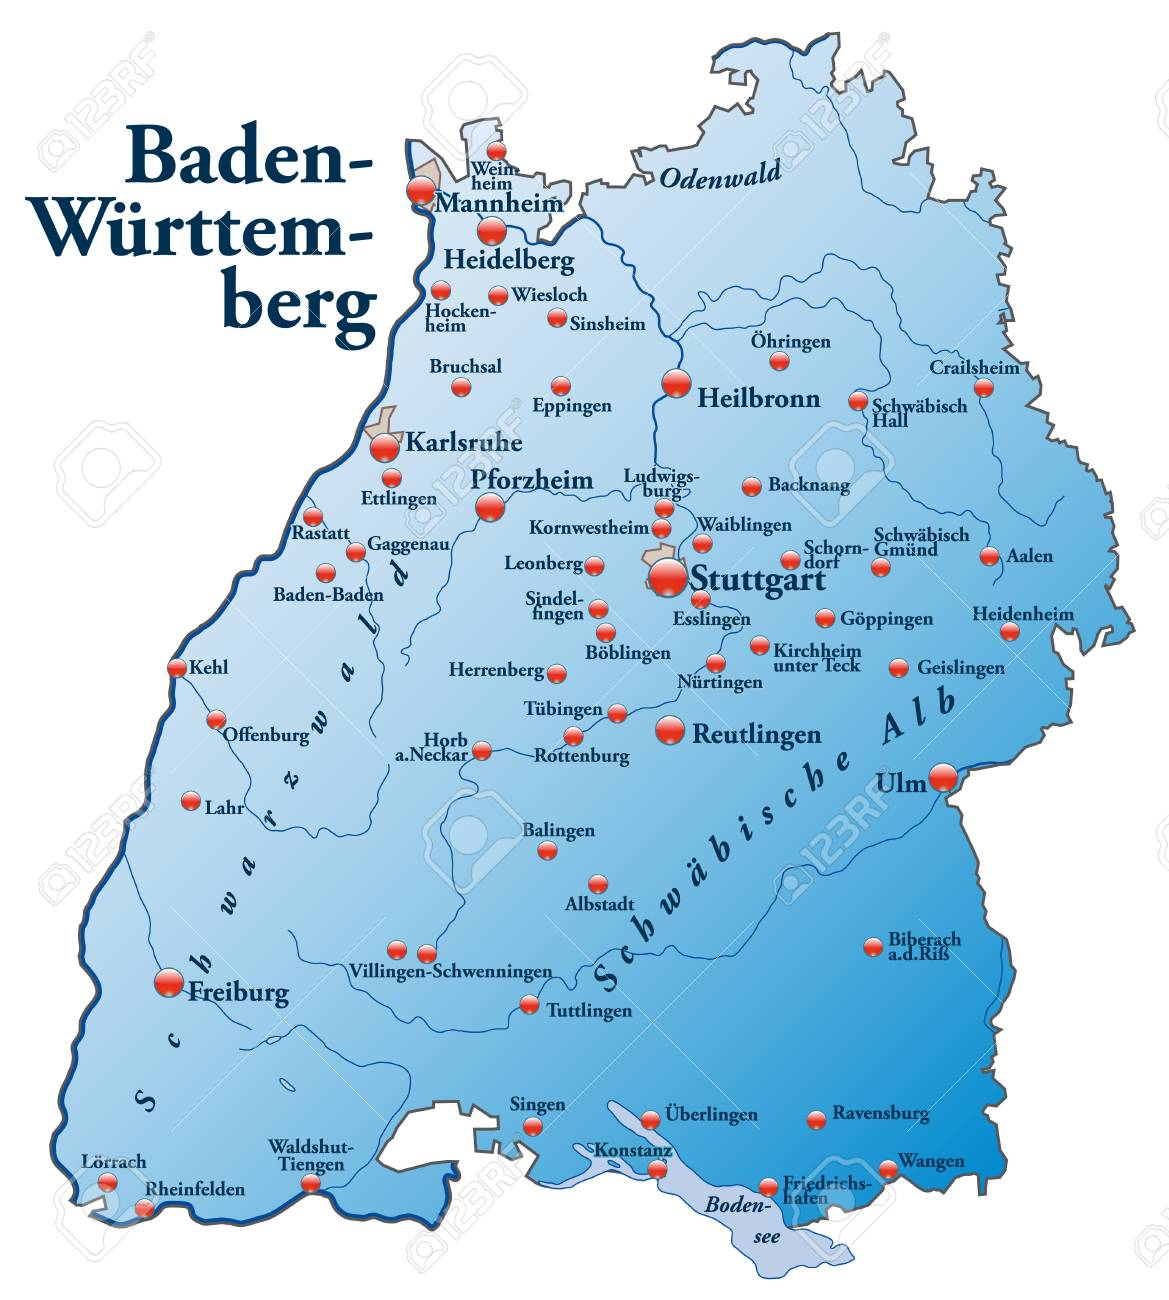 Map Of BadenWuerttemberg As An Overview Map In Blue Royalty Free